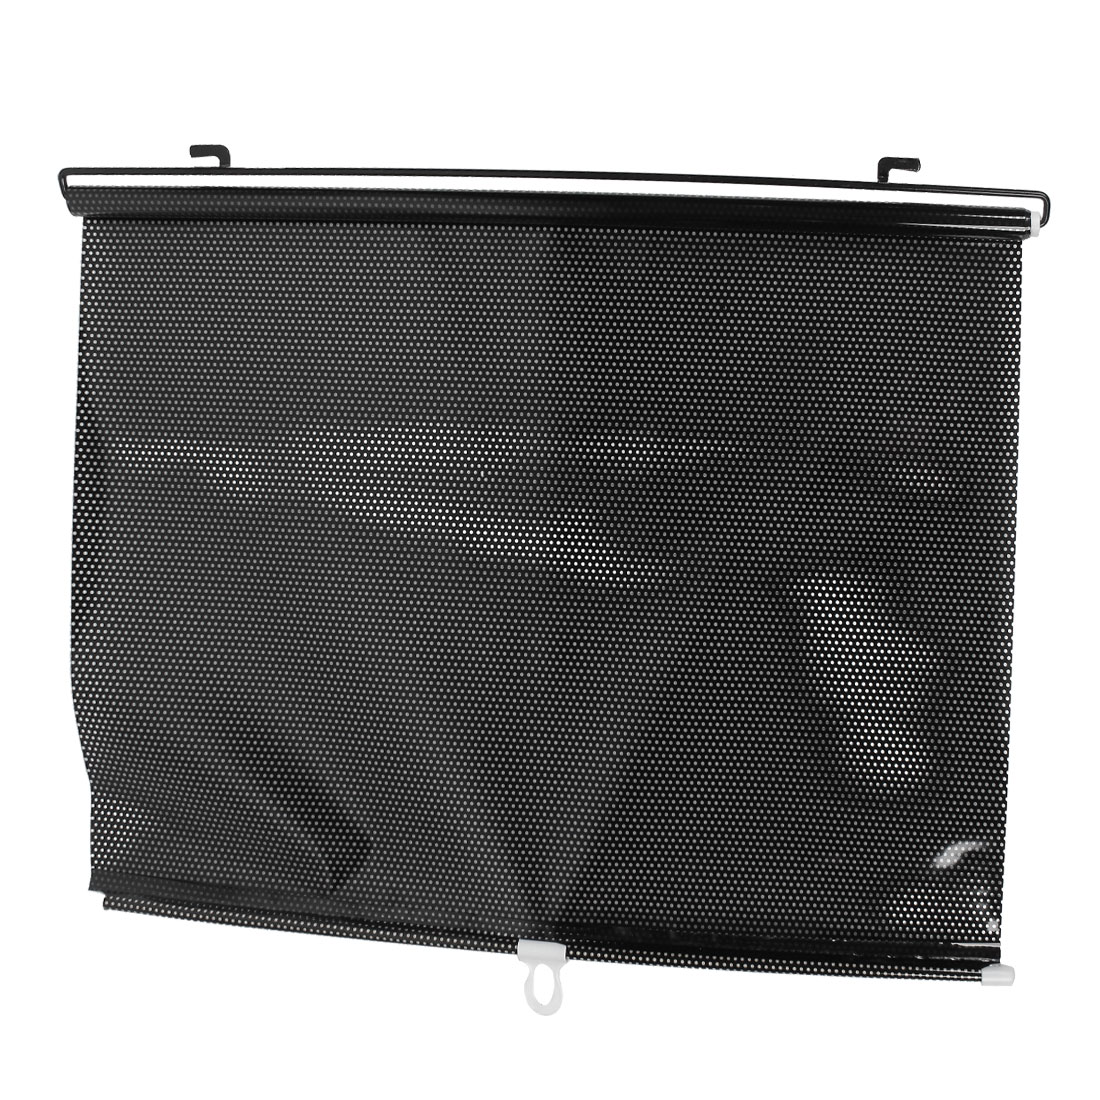 Roll Up Sun Shades >> X Autohaux 125cm X 58cm Black Clear Roll Up Reflective Sun Shade For